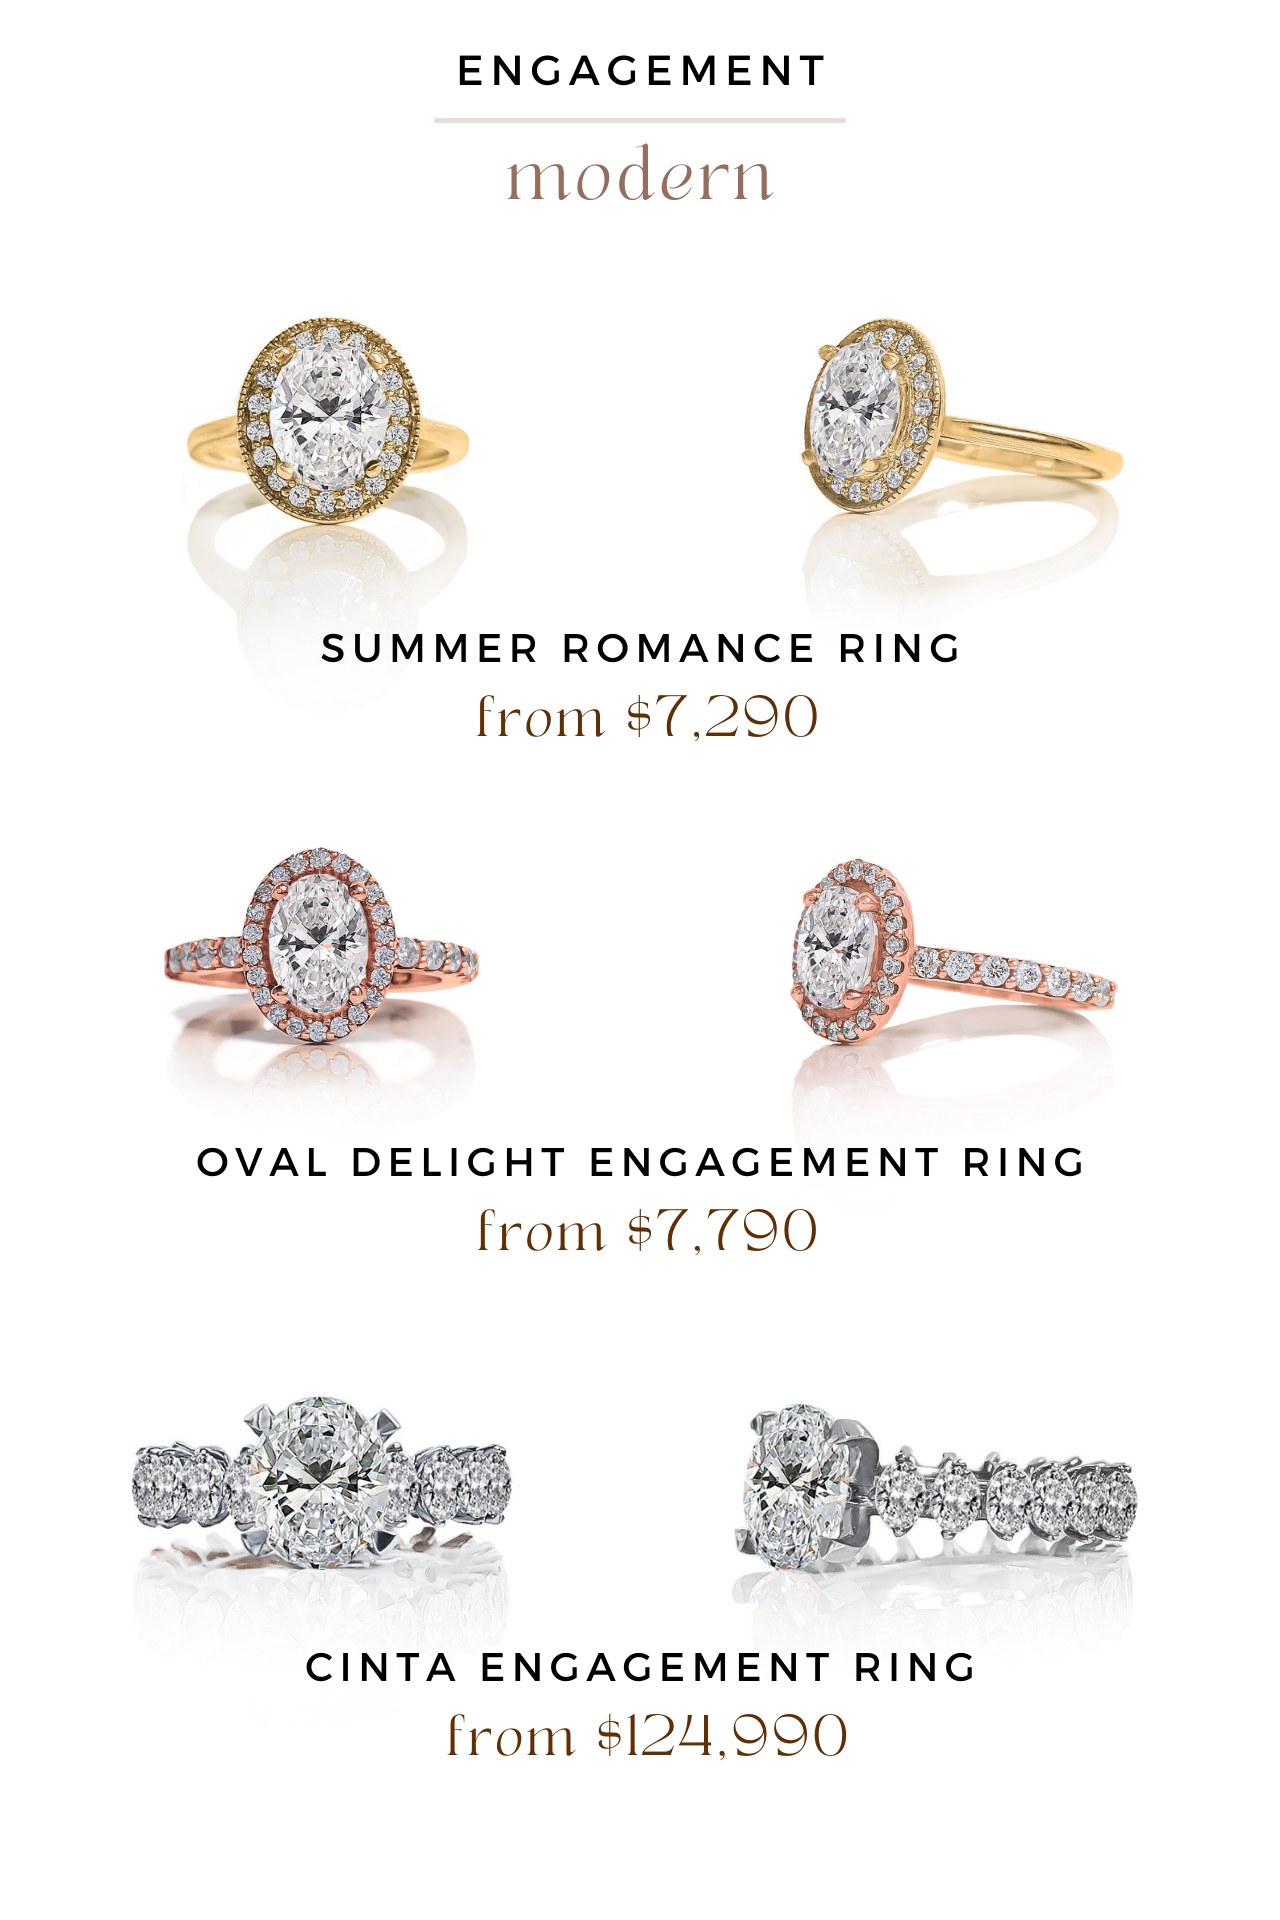 summer romance ring, oval delight engagement ring, cinta engagement ring